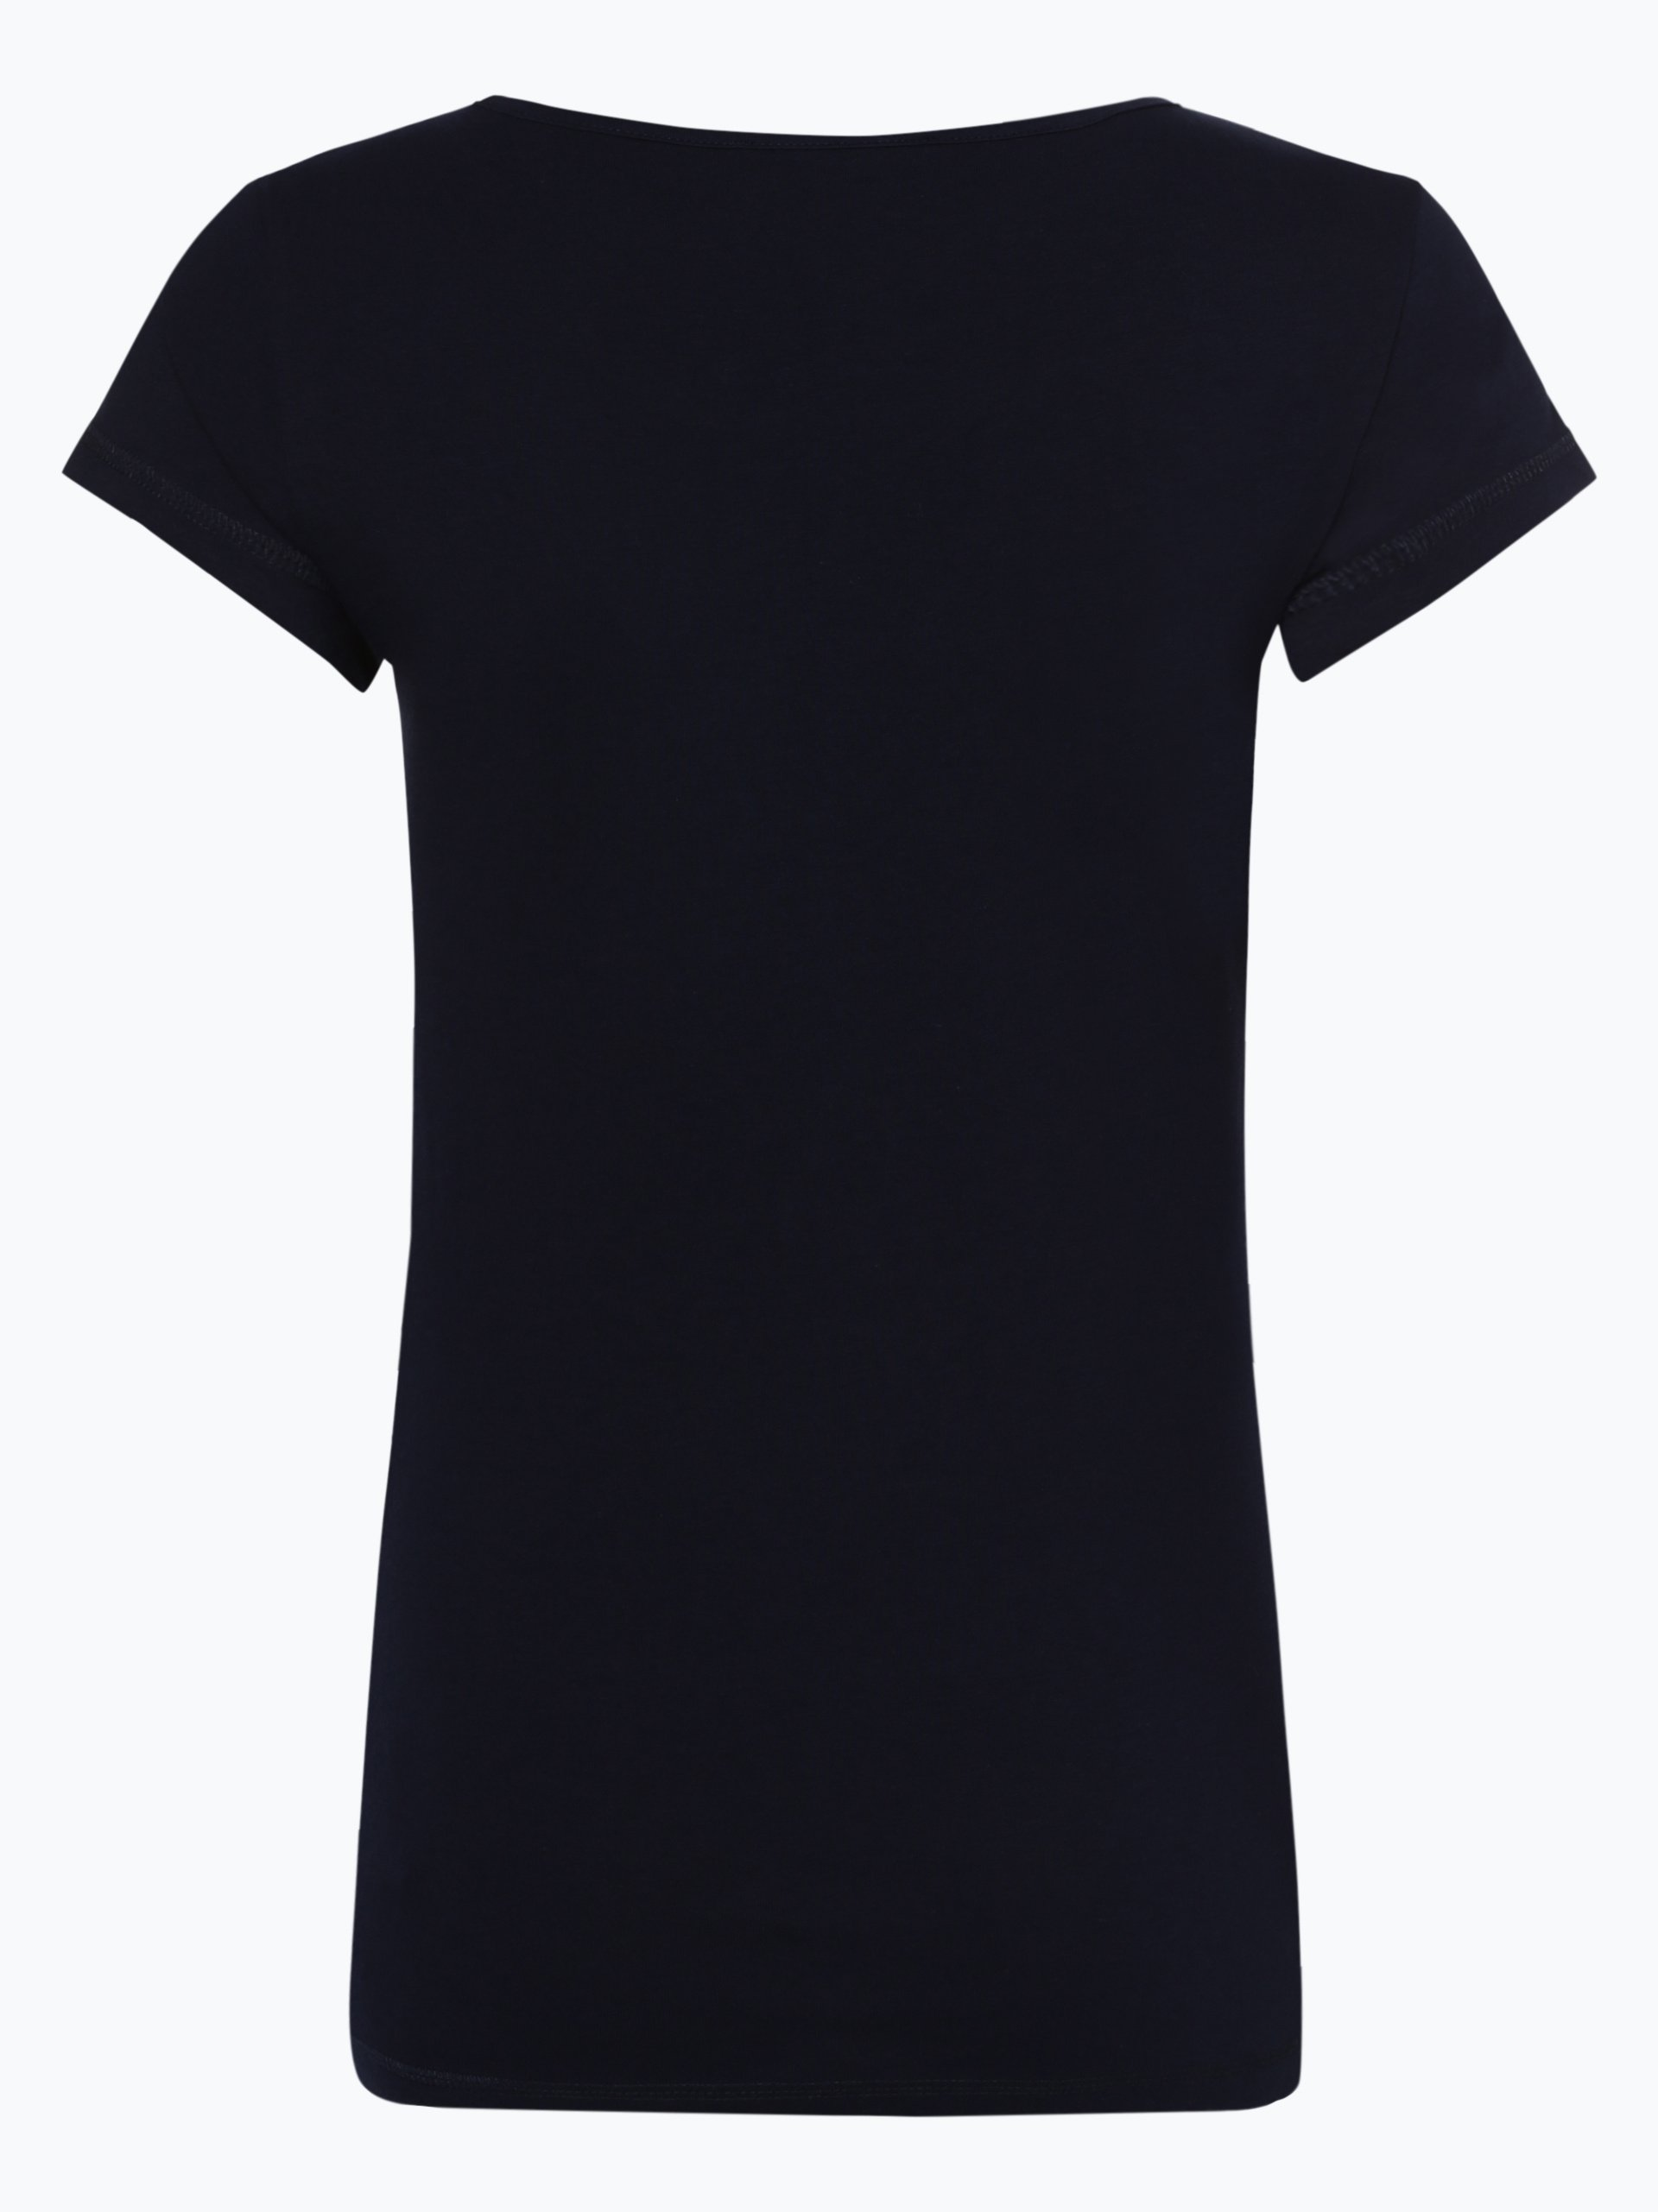 Tom Tailor Denim Damen T-Shirt